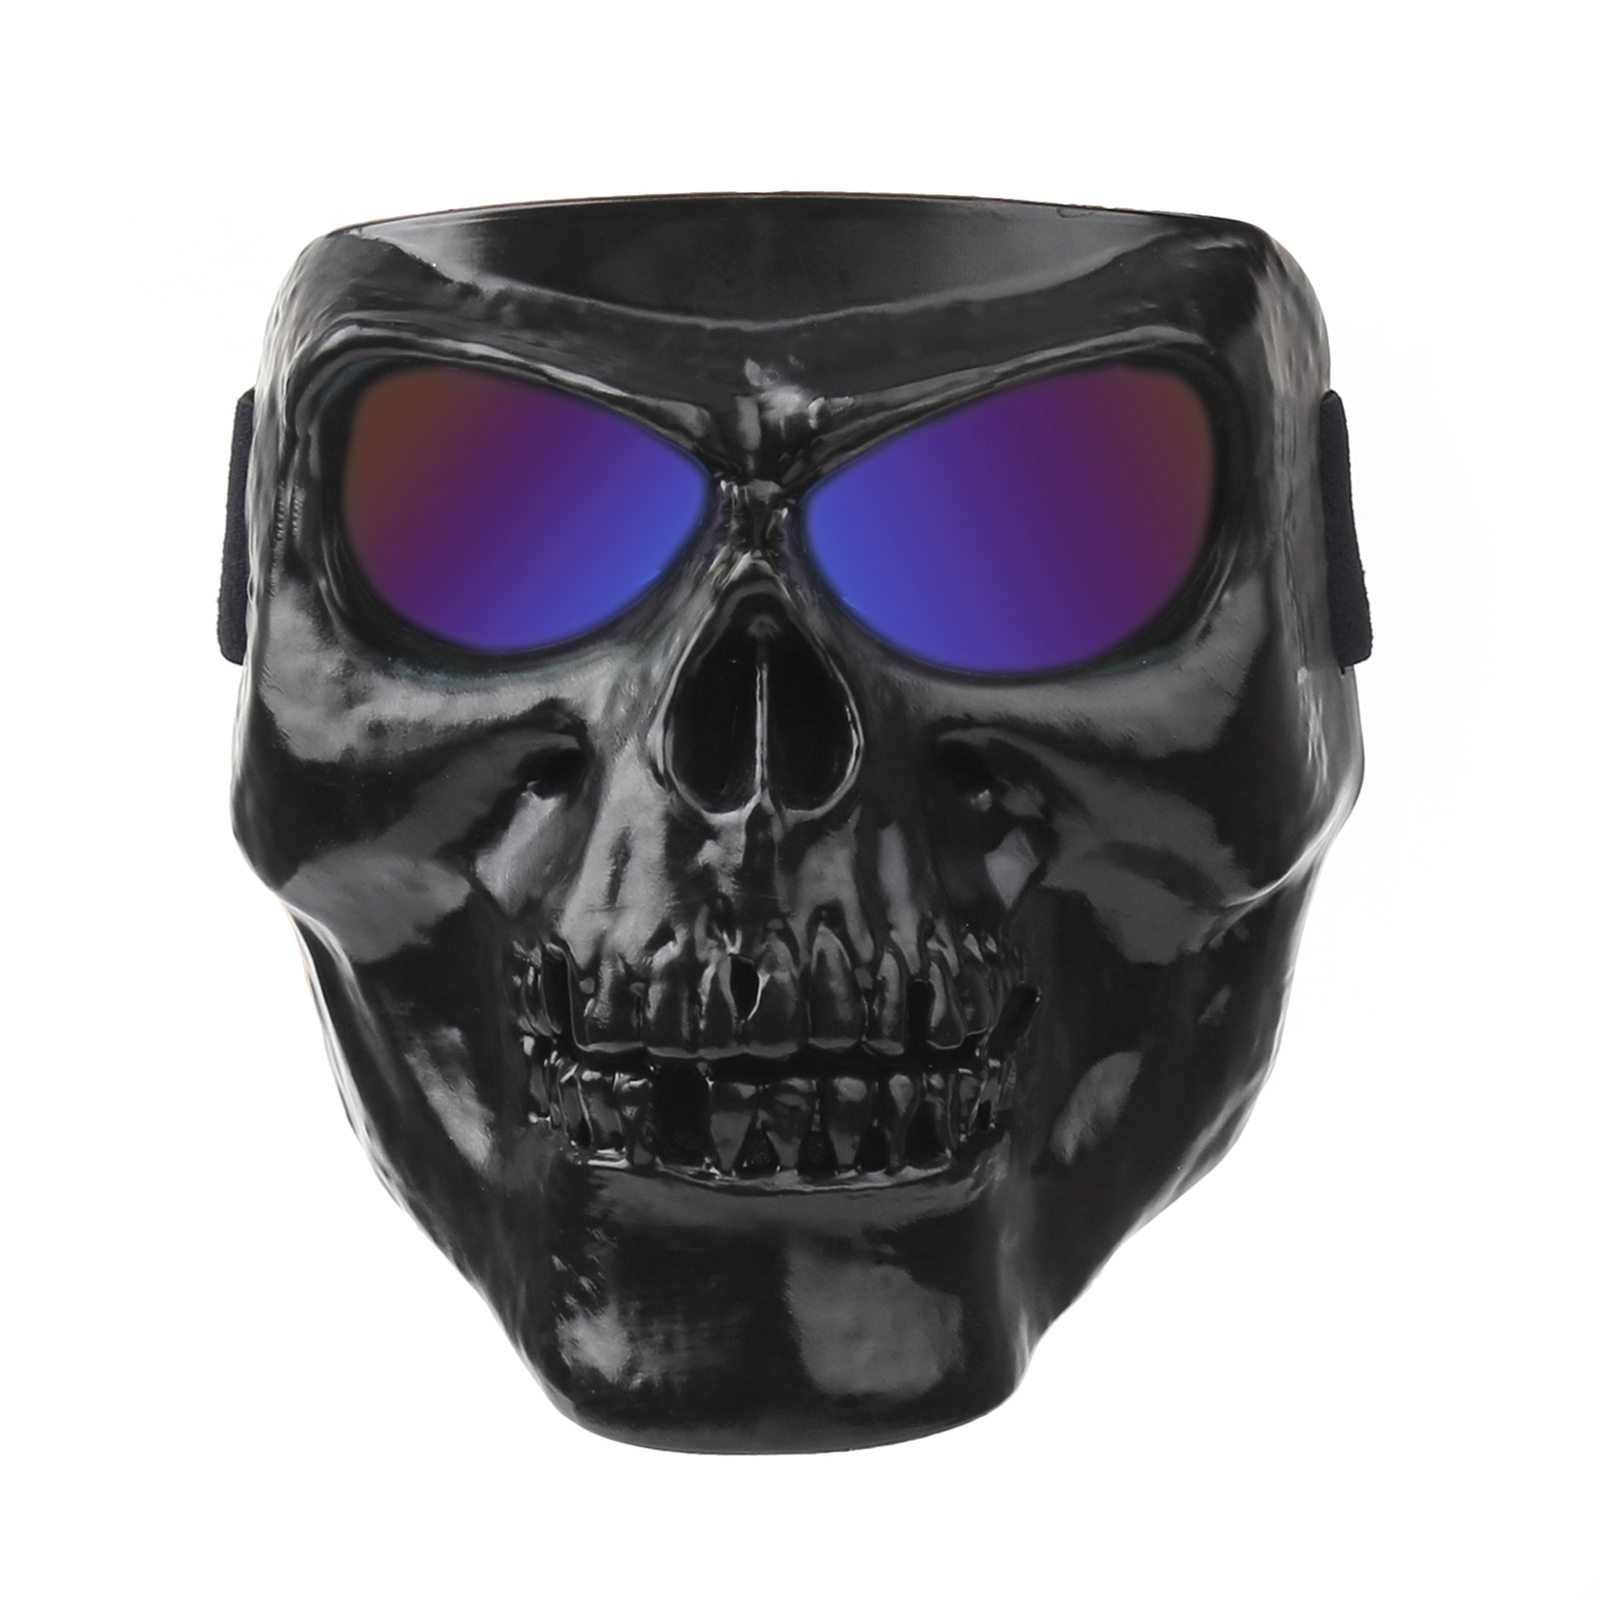 Areyourshop Off-Road Skull Motocross Racing ATV Dirt Bike Motorcycle Goggles Eyewear Lens #B